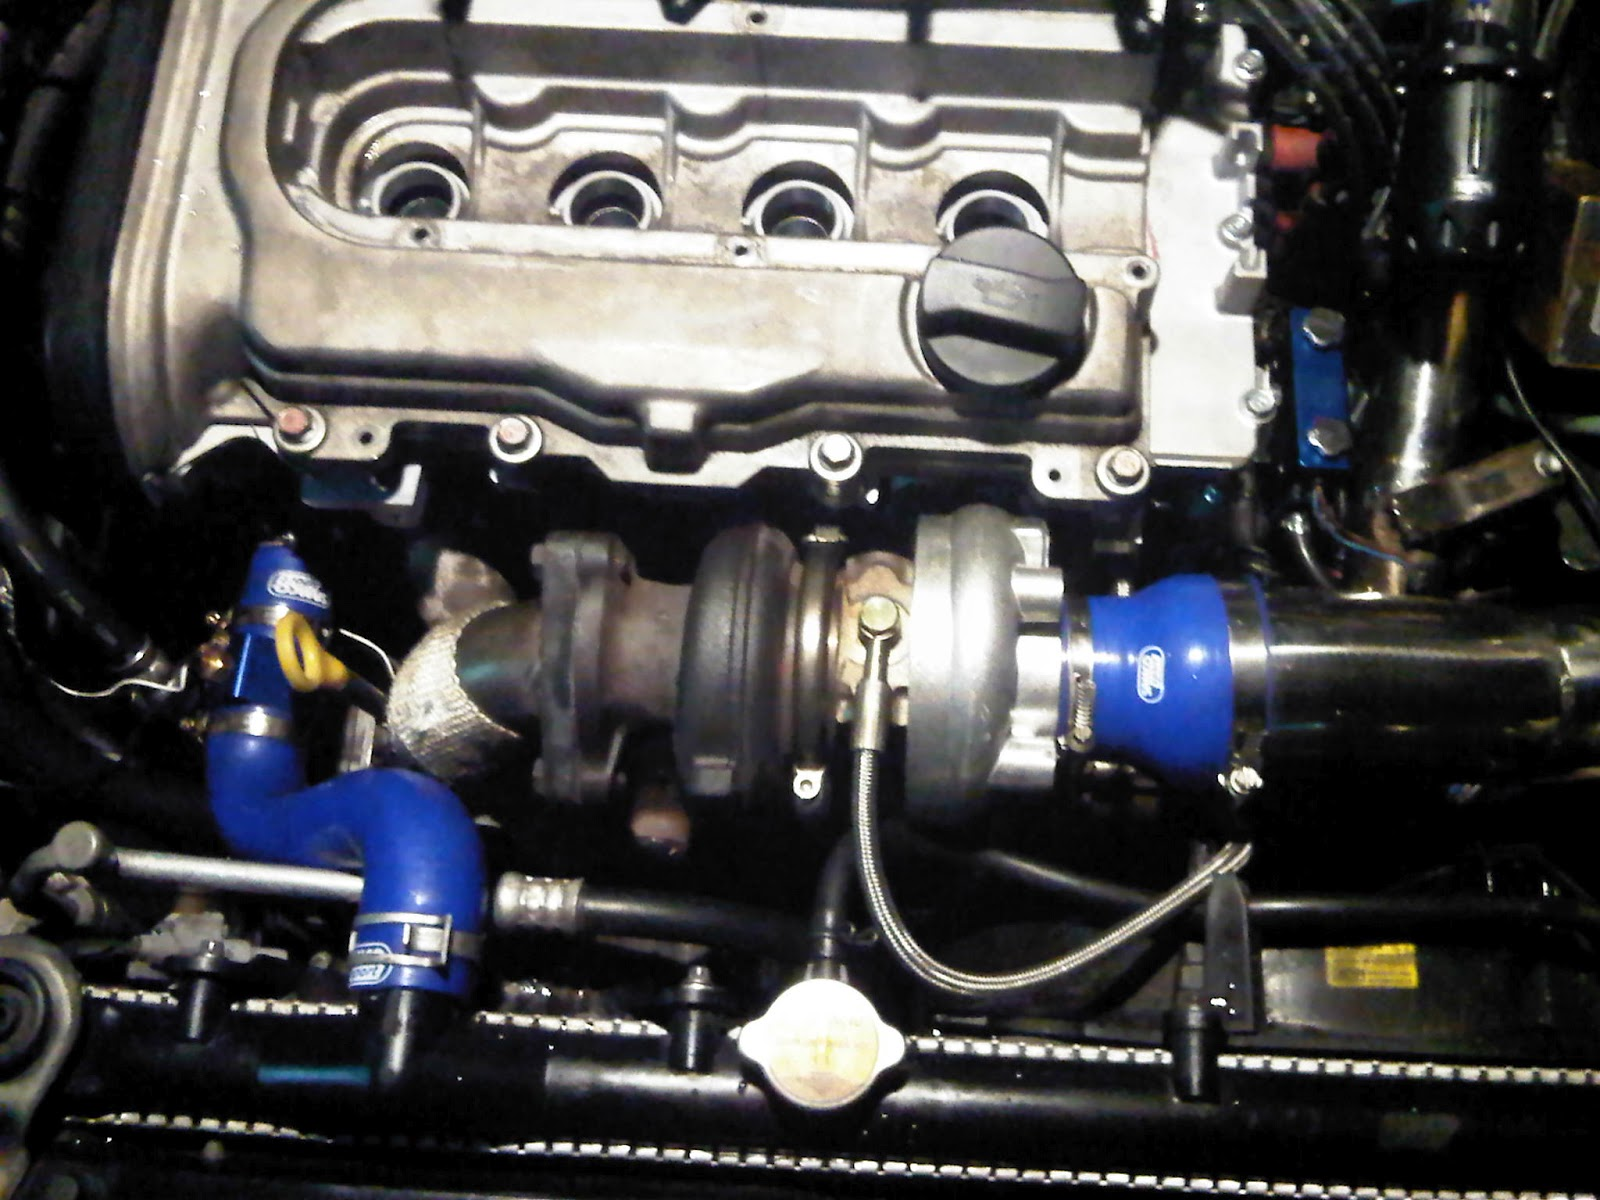 Campro engine review